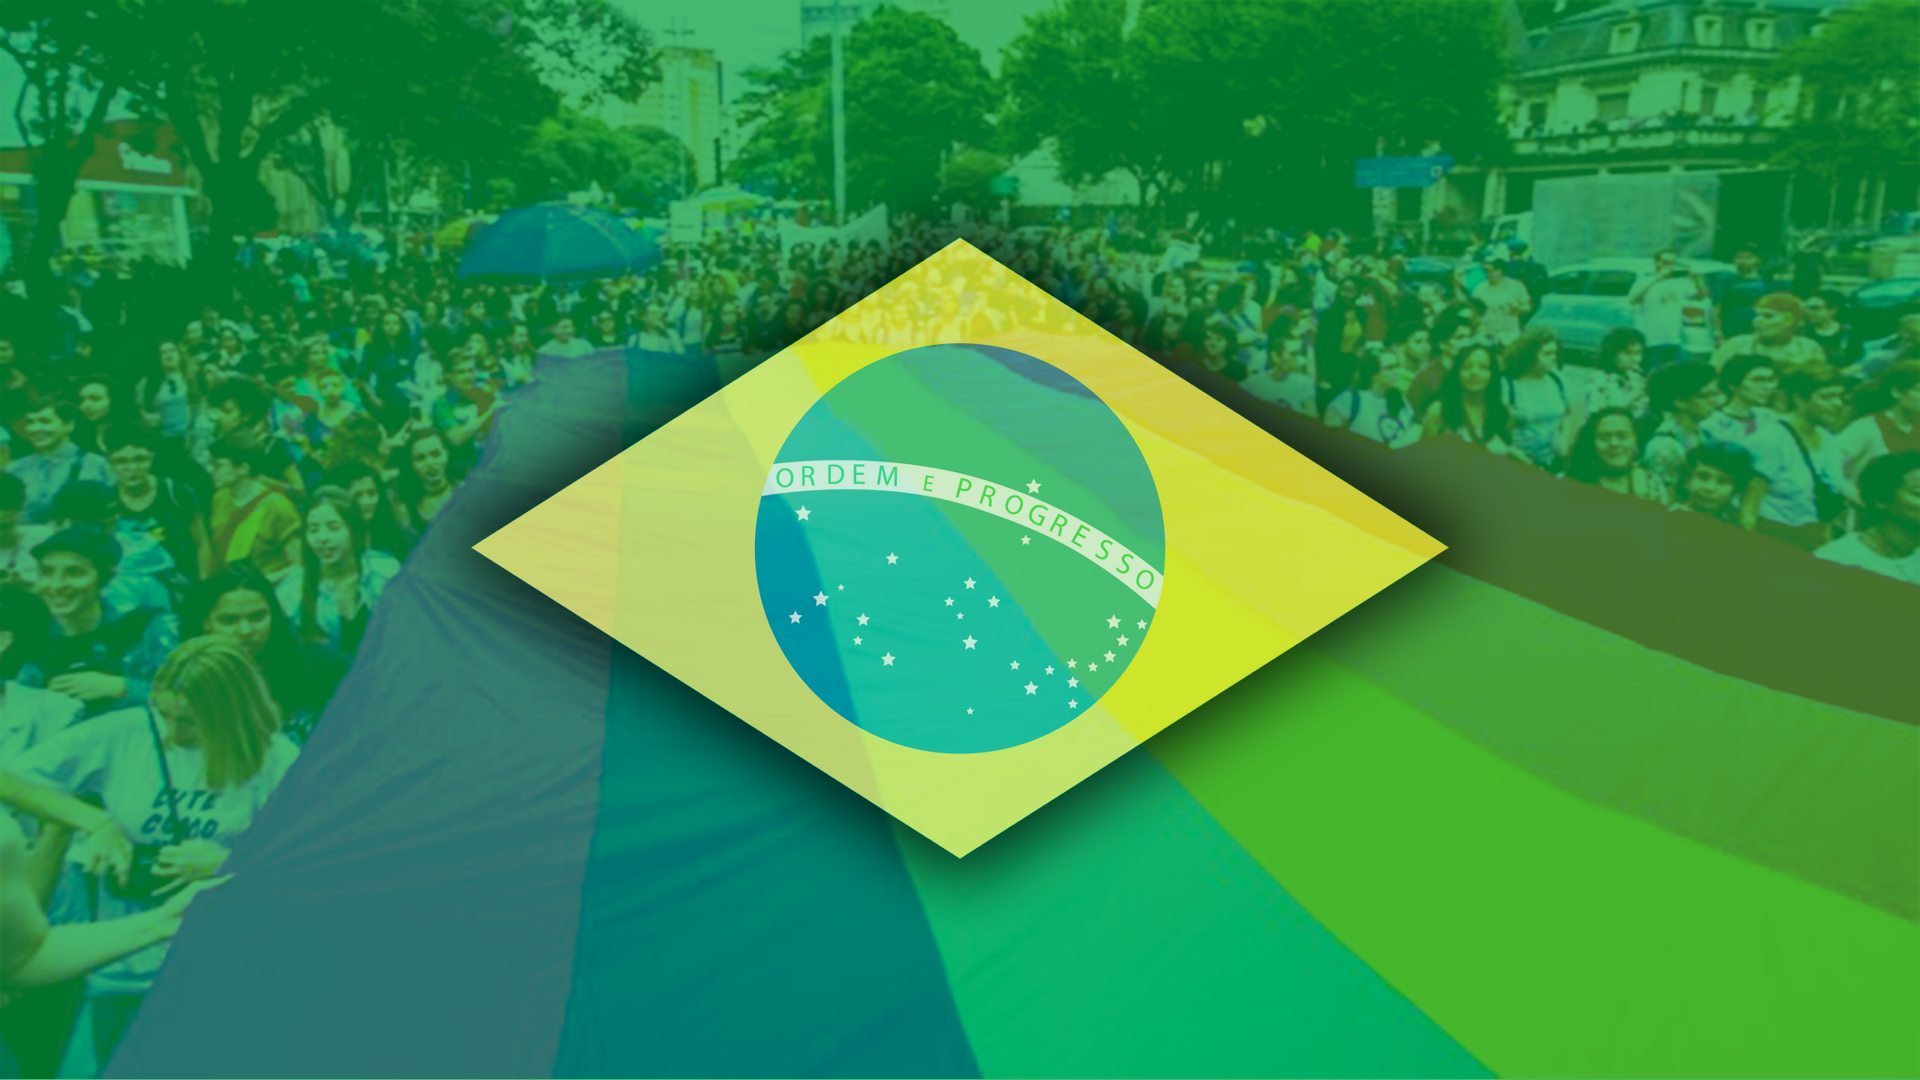 Brazils Supreme Court voted to criminalize homophobia